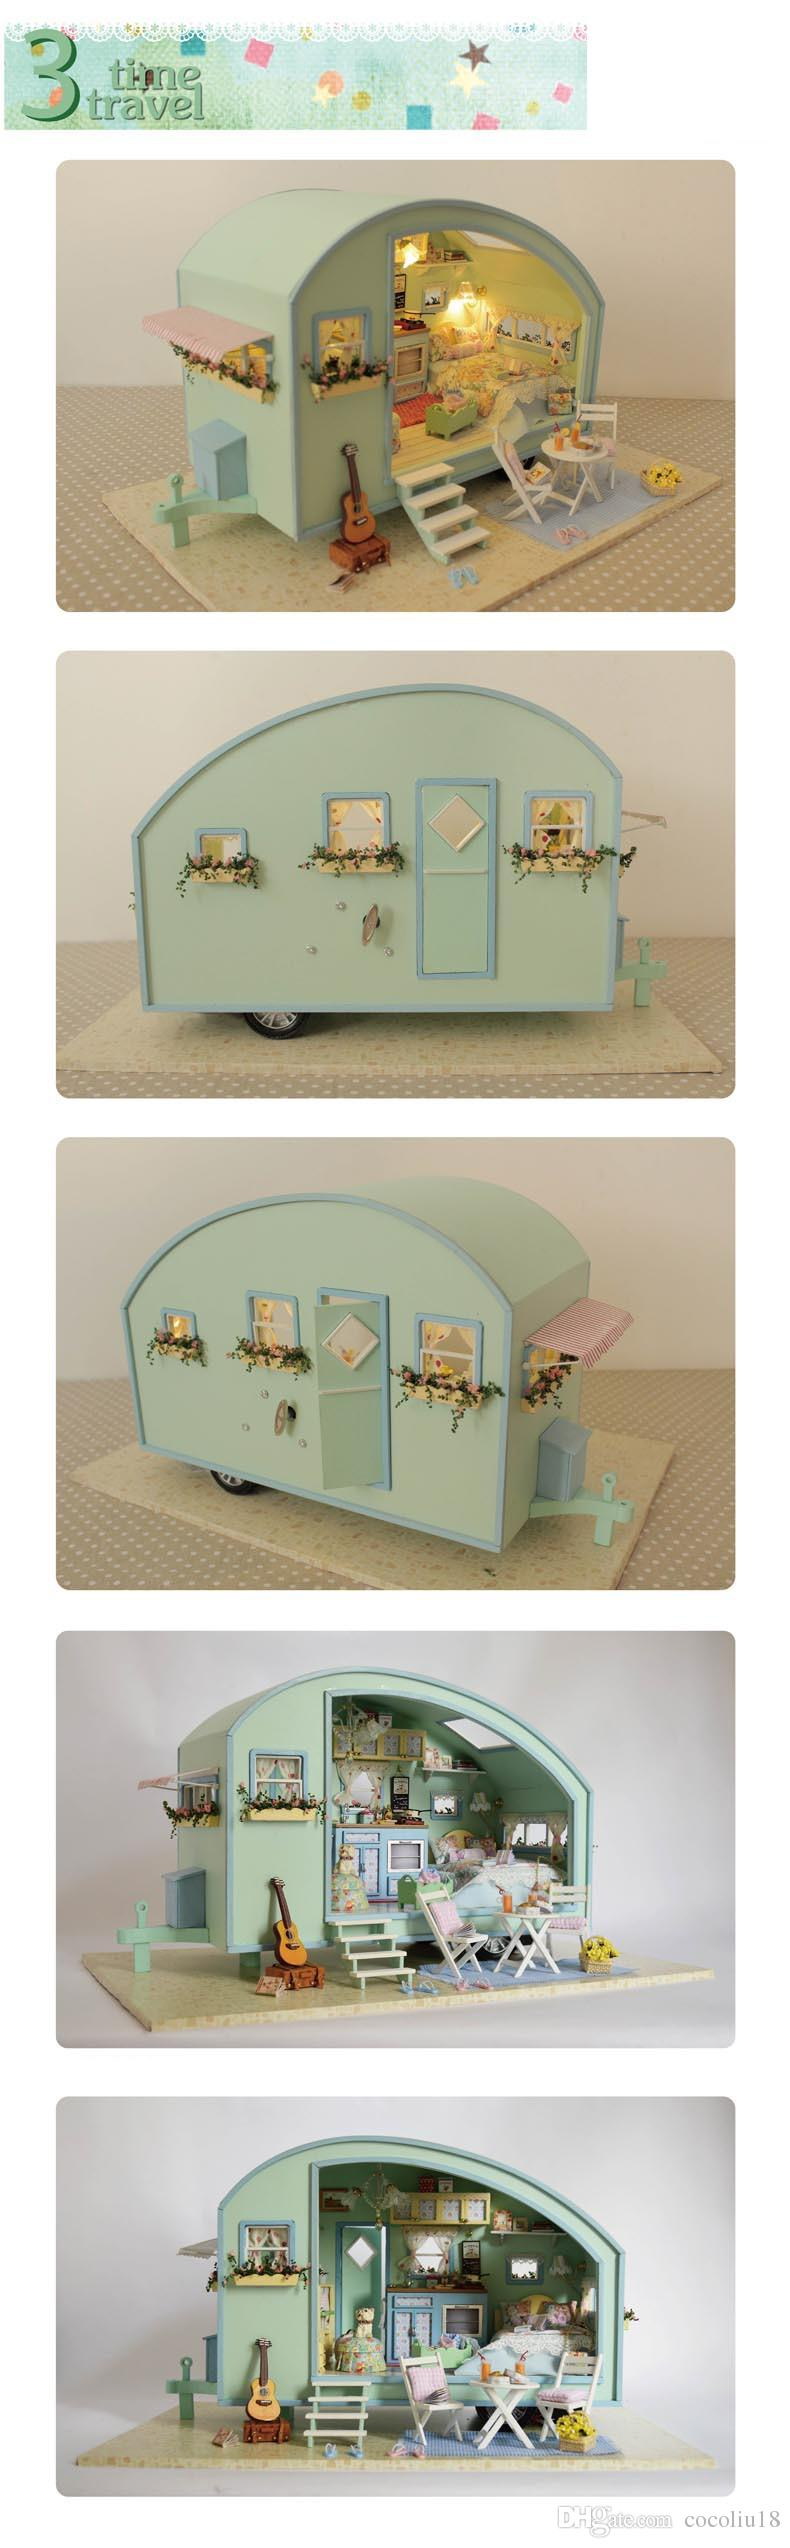 mini doll furniture. DIY Doll House Wooden Houses Miniature Dollhouse Furniture Kit Toys For Children Gift Time Travel Mini